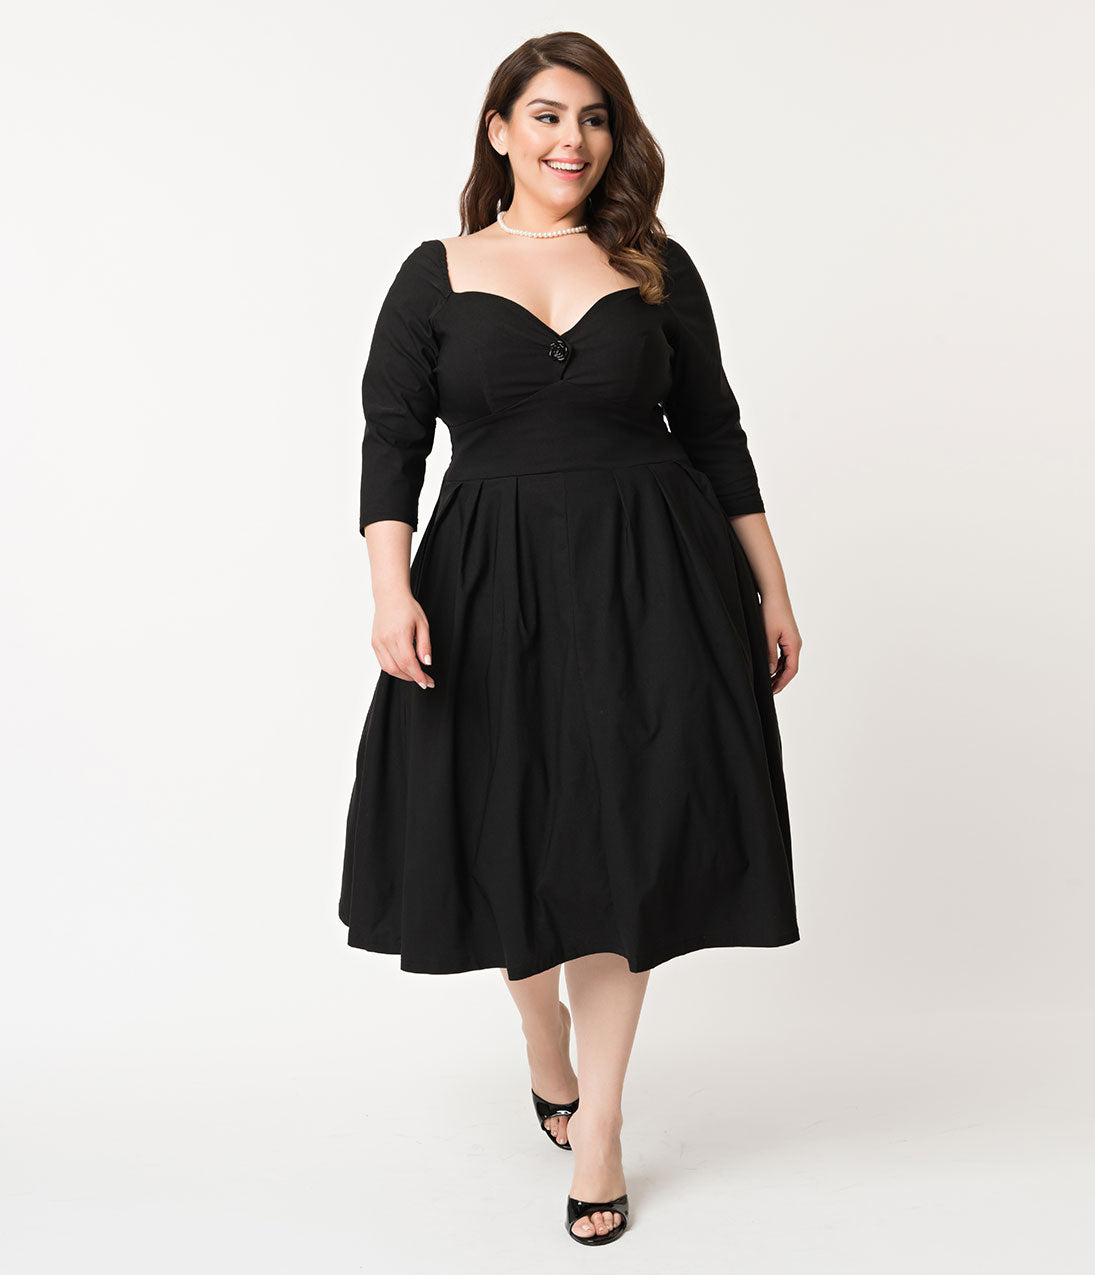 1950s Cocktail Dresses, Party Dresses Unique Vintage Plus Size 1950S Style Black Bengaline Sweetheart Lamar Swing Dress $98.00 AT vintagedancer.com